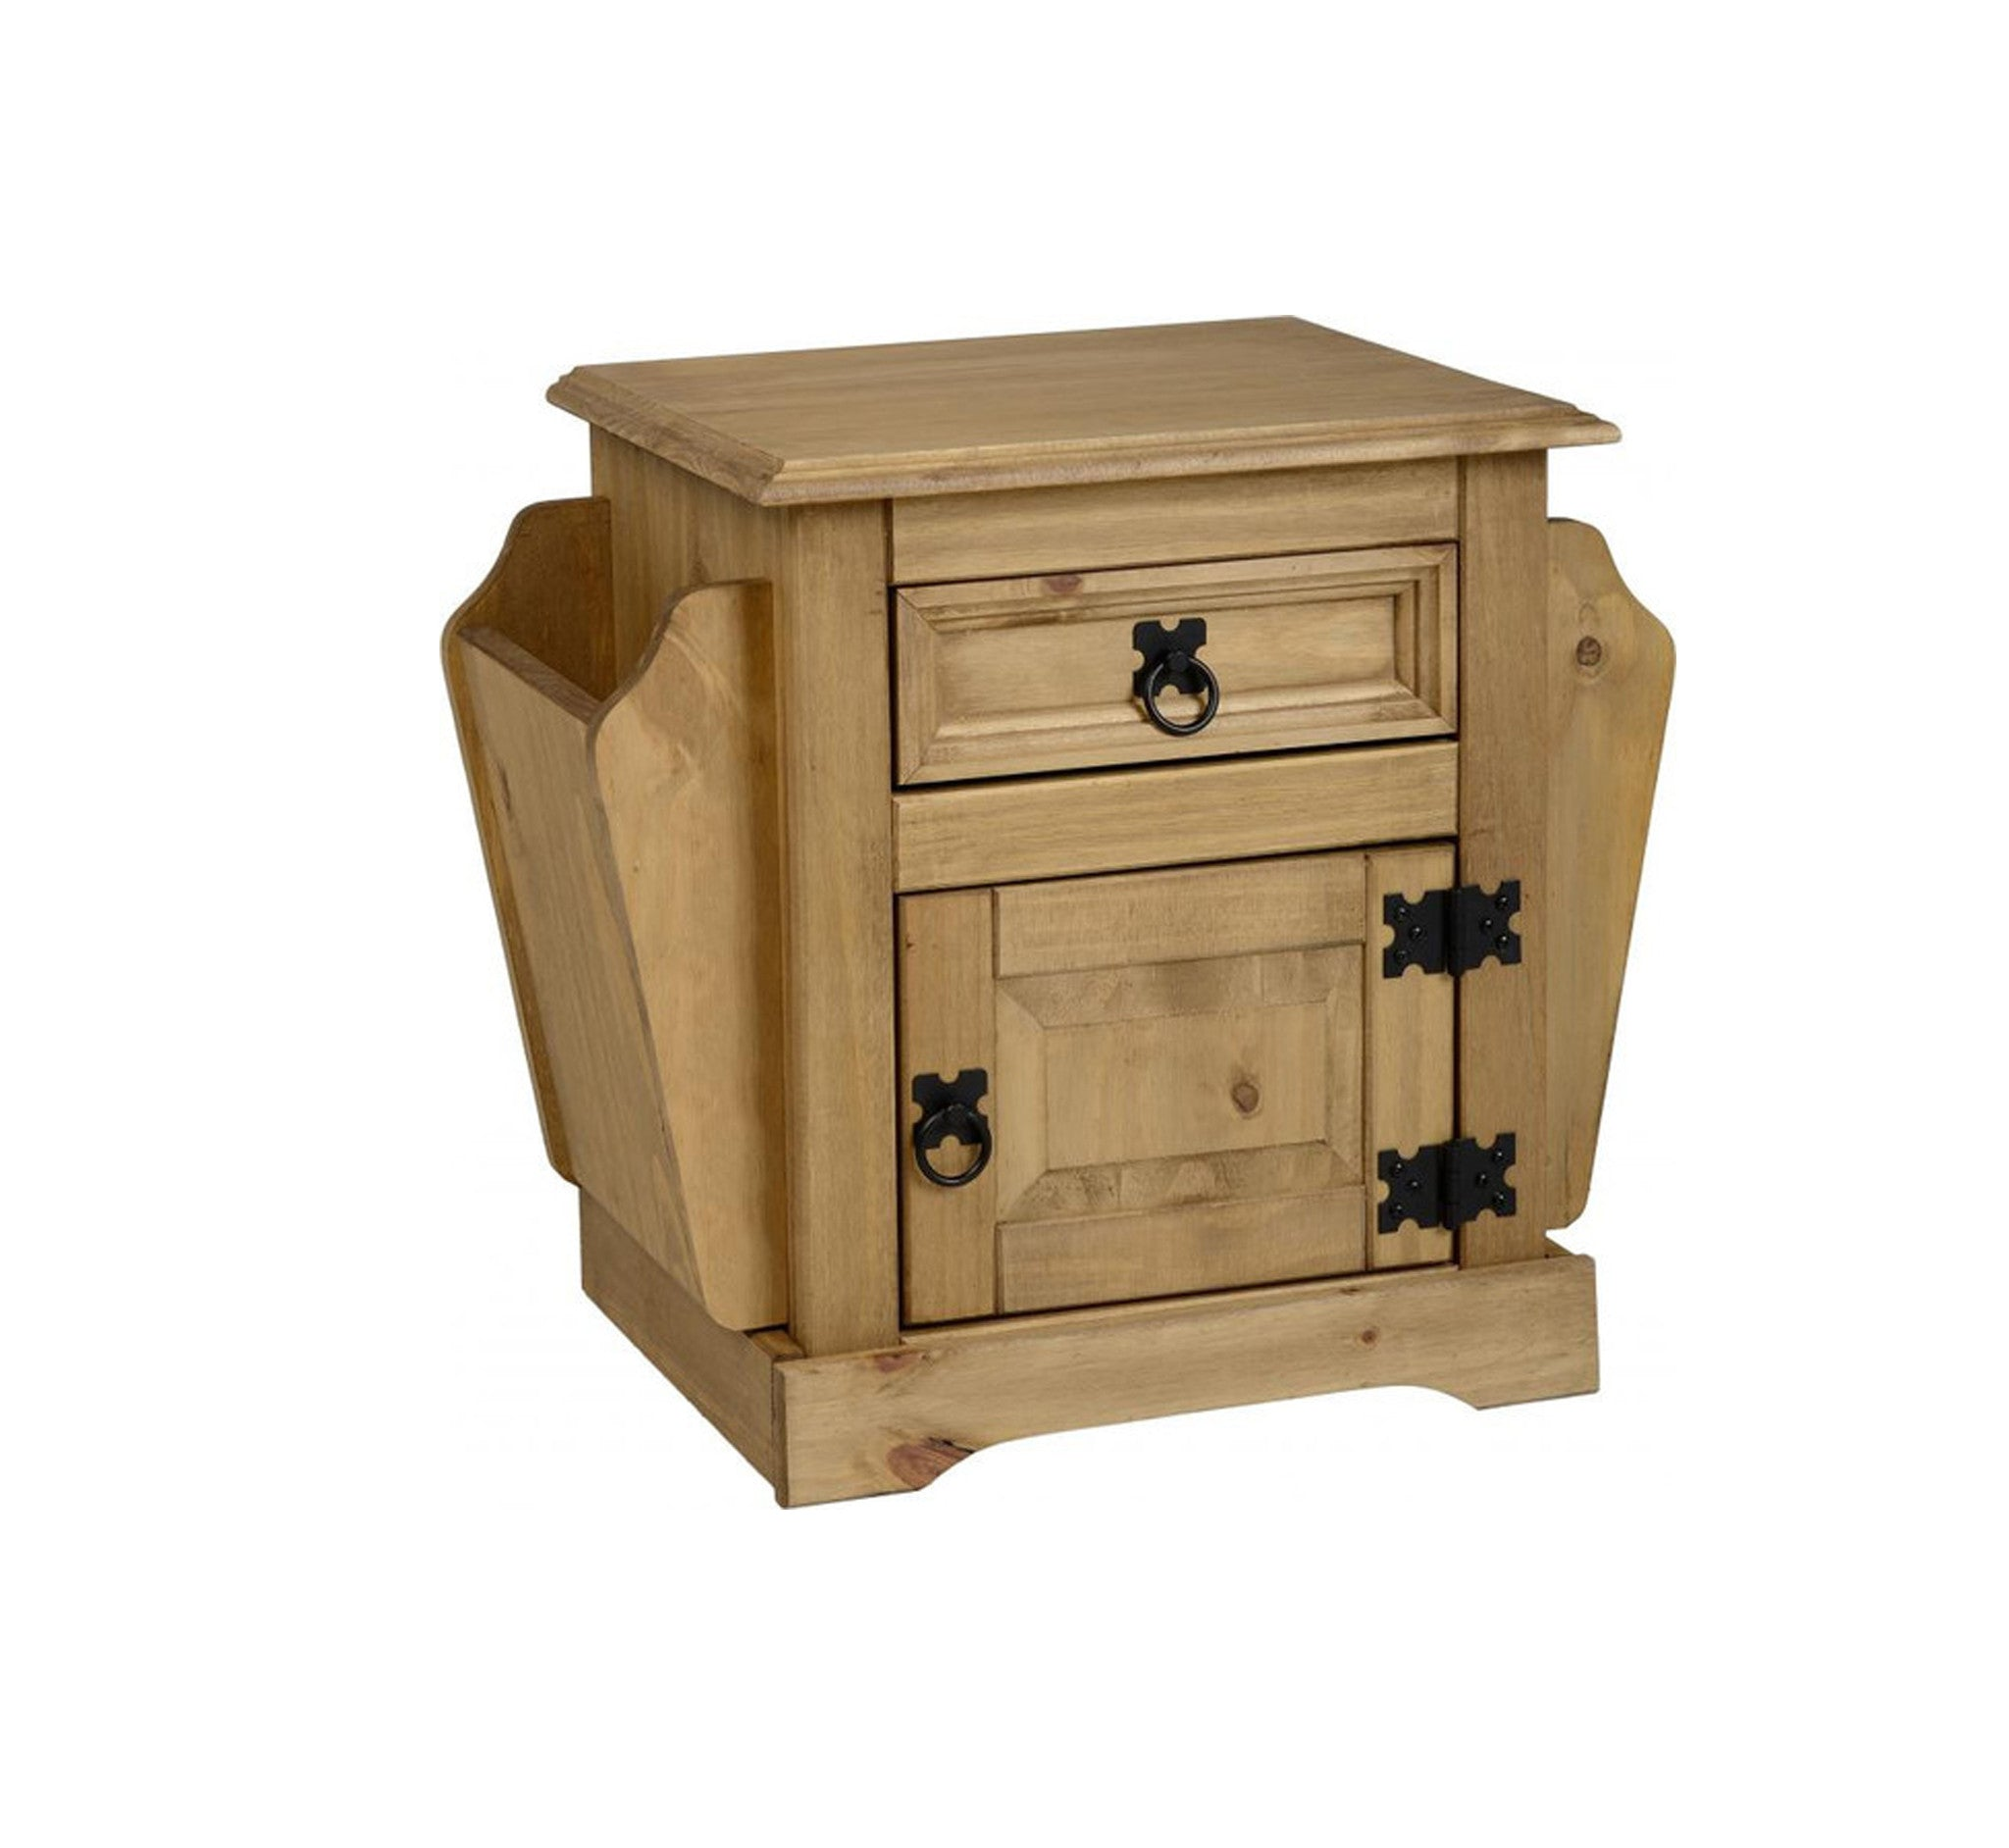 Mexican Pine Living Room Furniture Buy Side Coffee Tables Online Ahoc Ltd